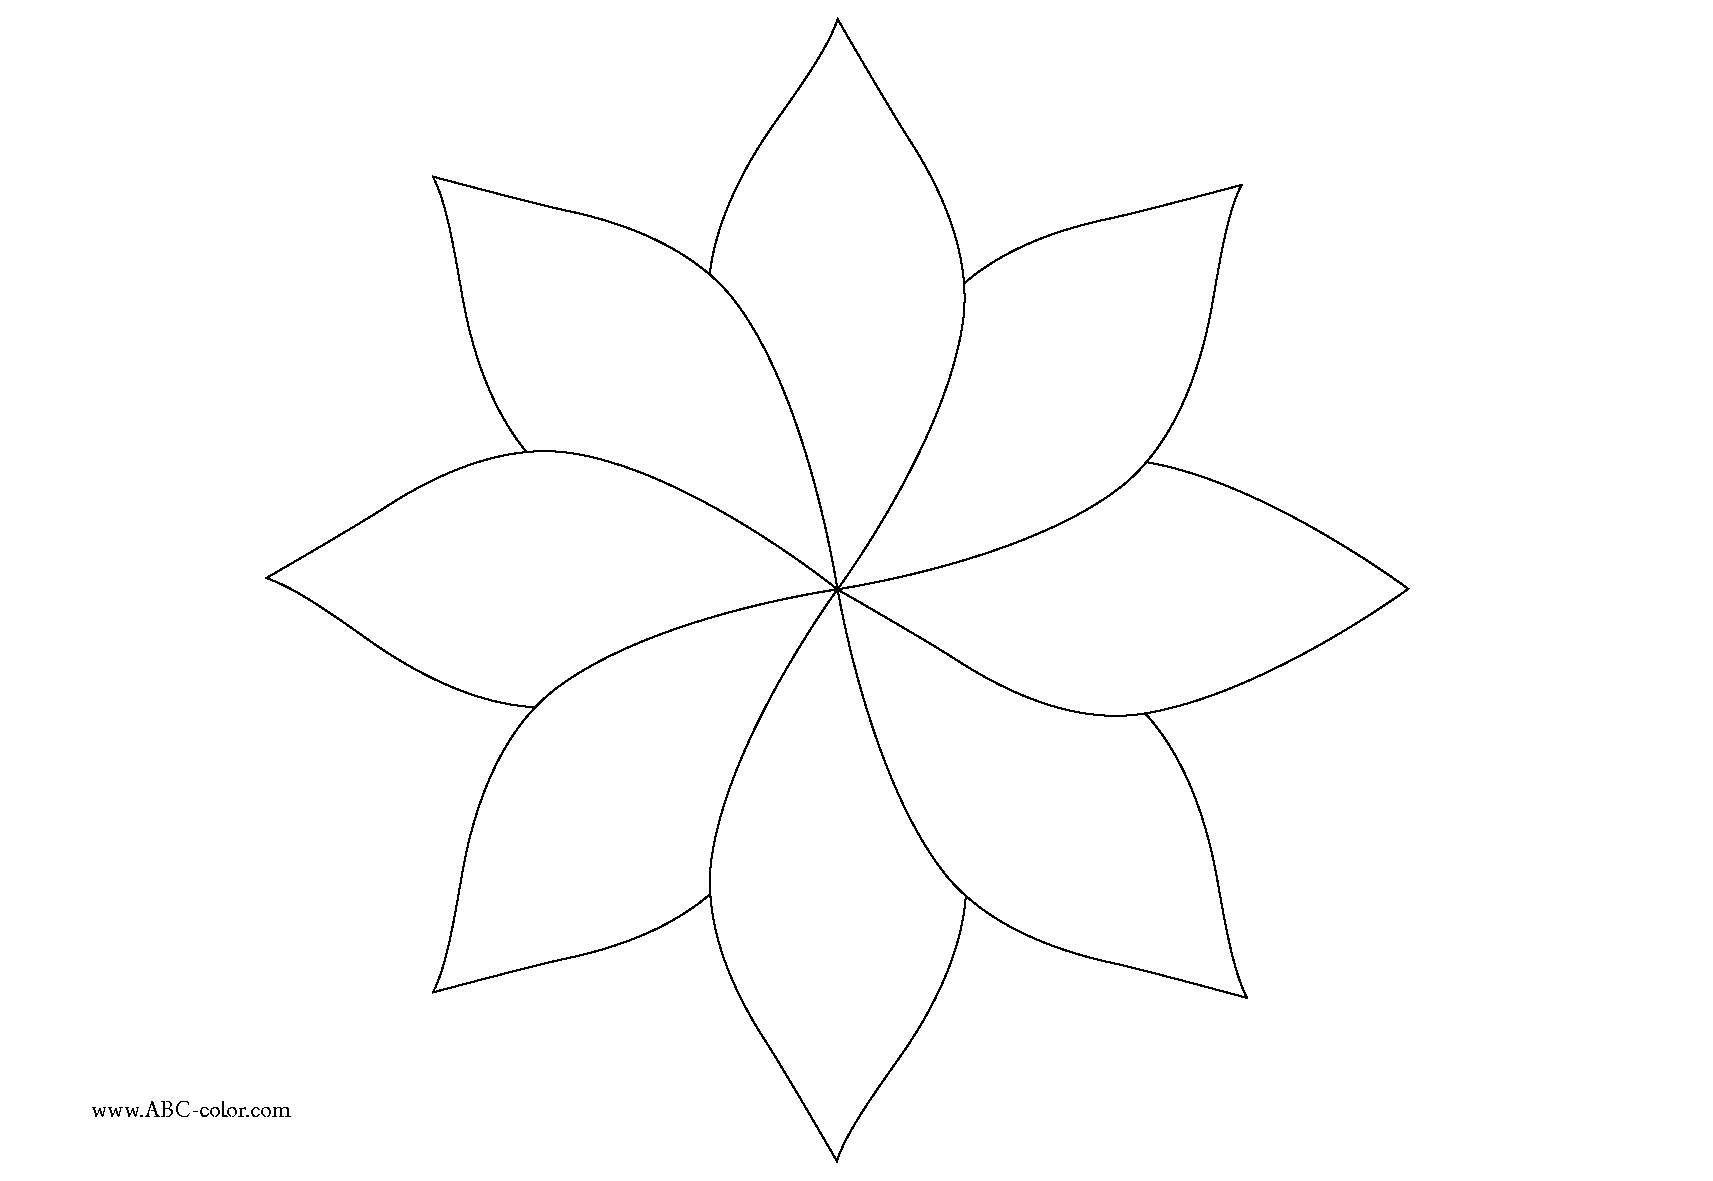 8 point flower clipart clipart images gallery for free.